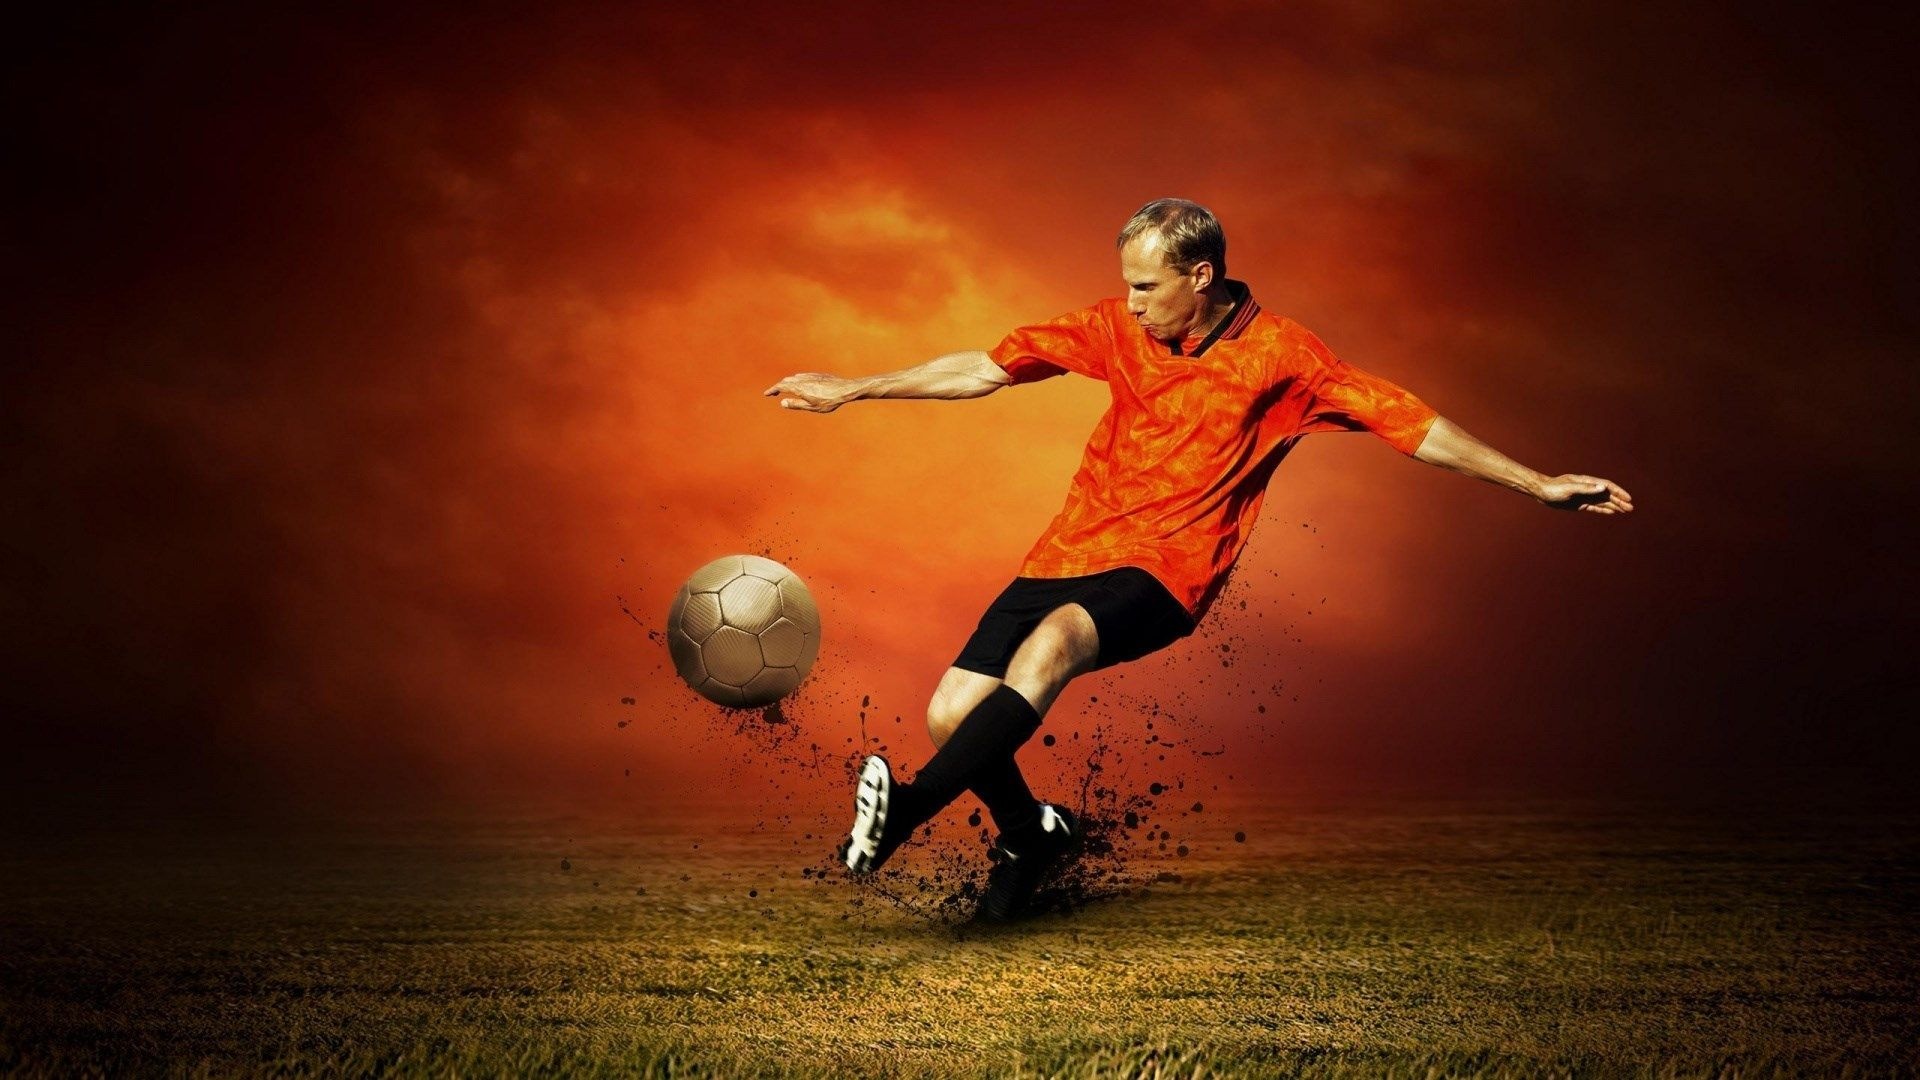 Football Widescreen Hd Wallpapers Sports Wallpapers Sport Photography Sports